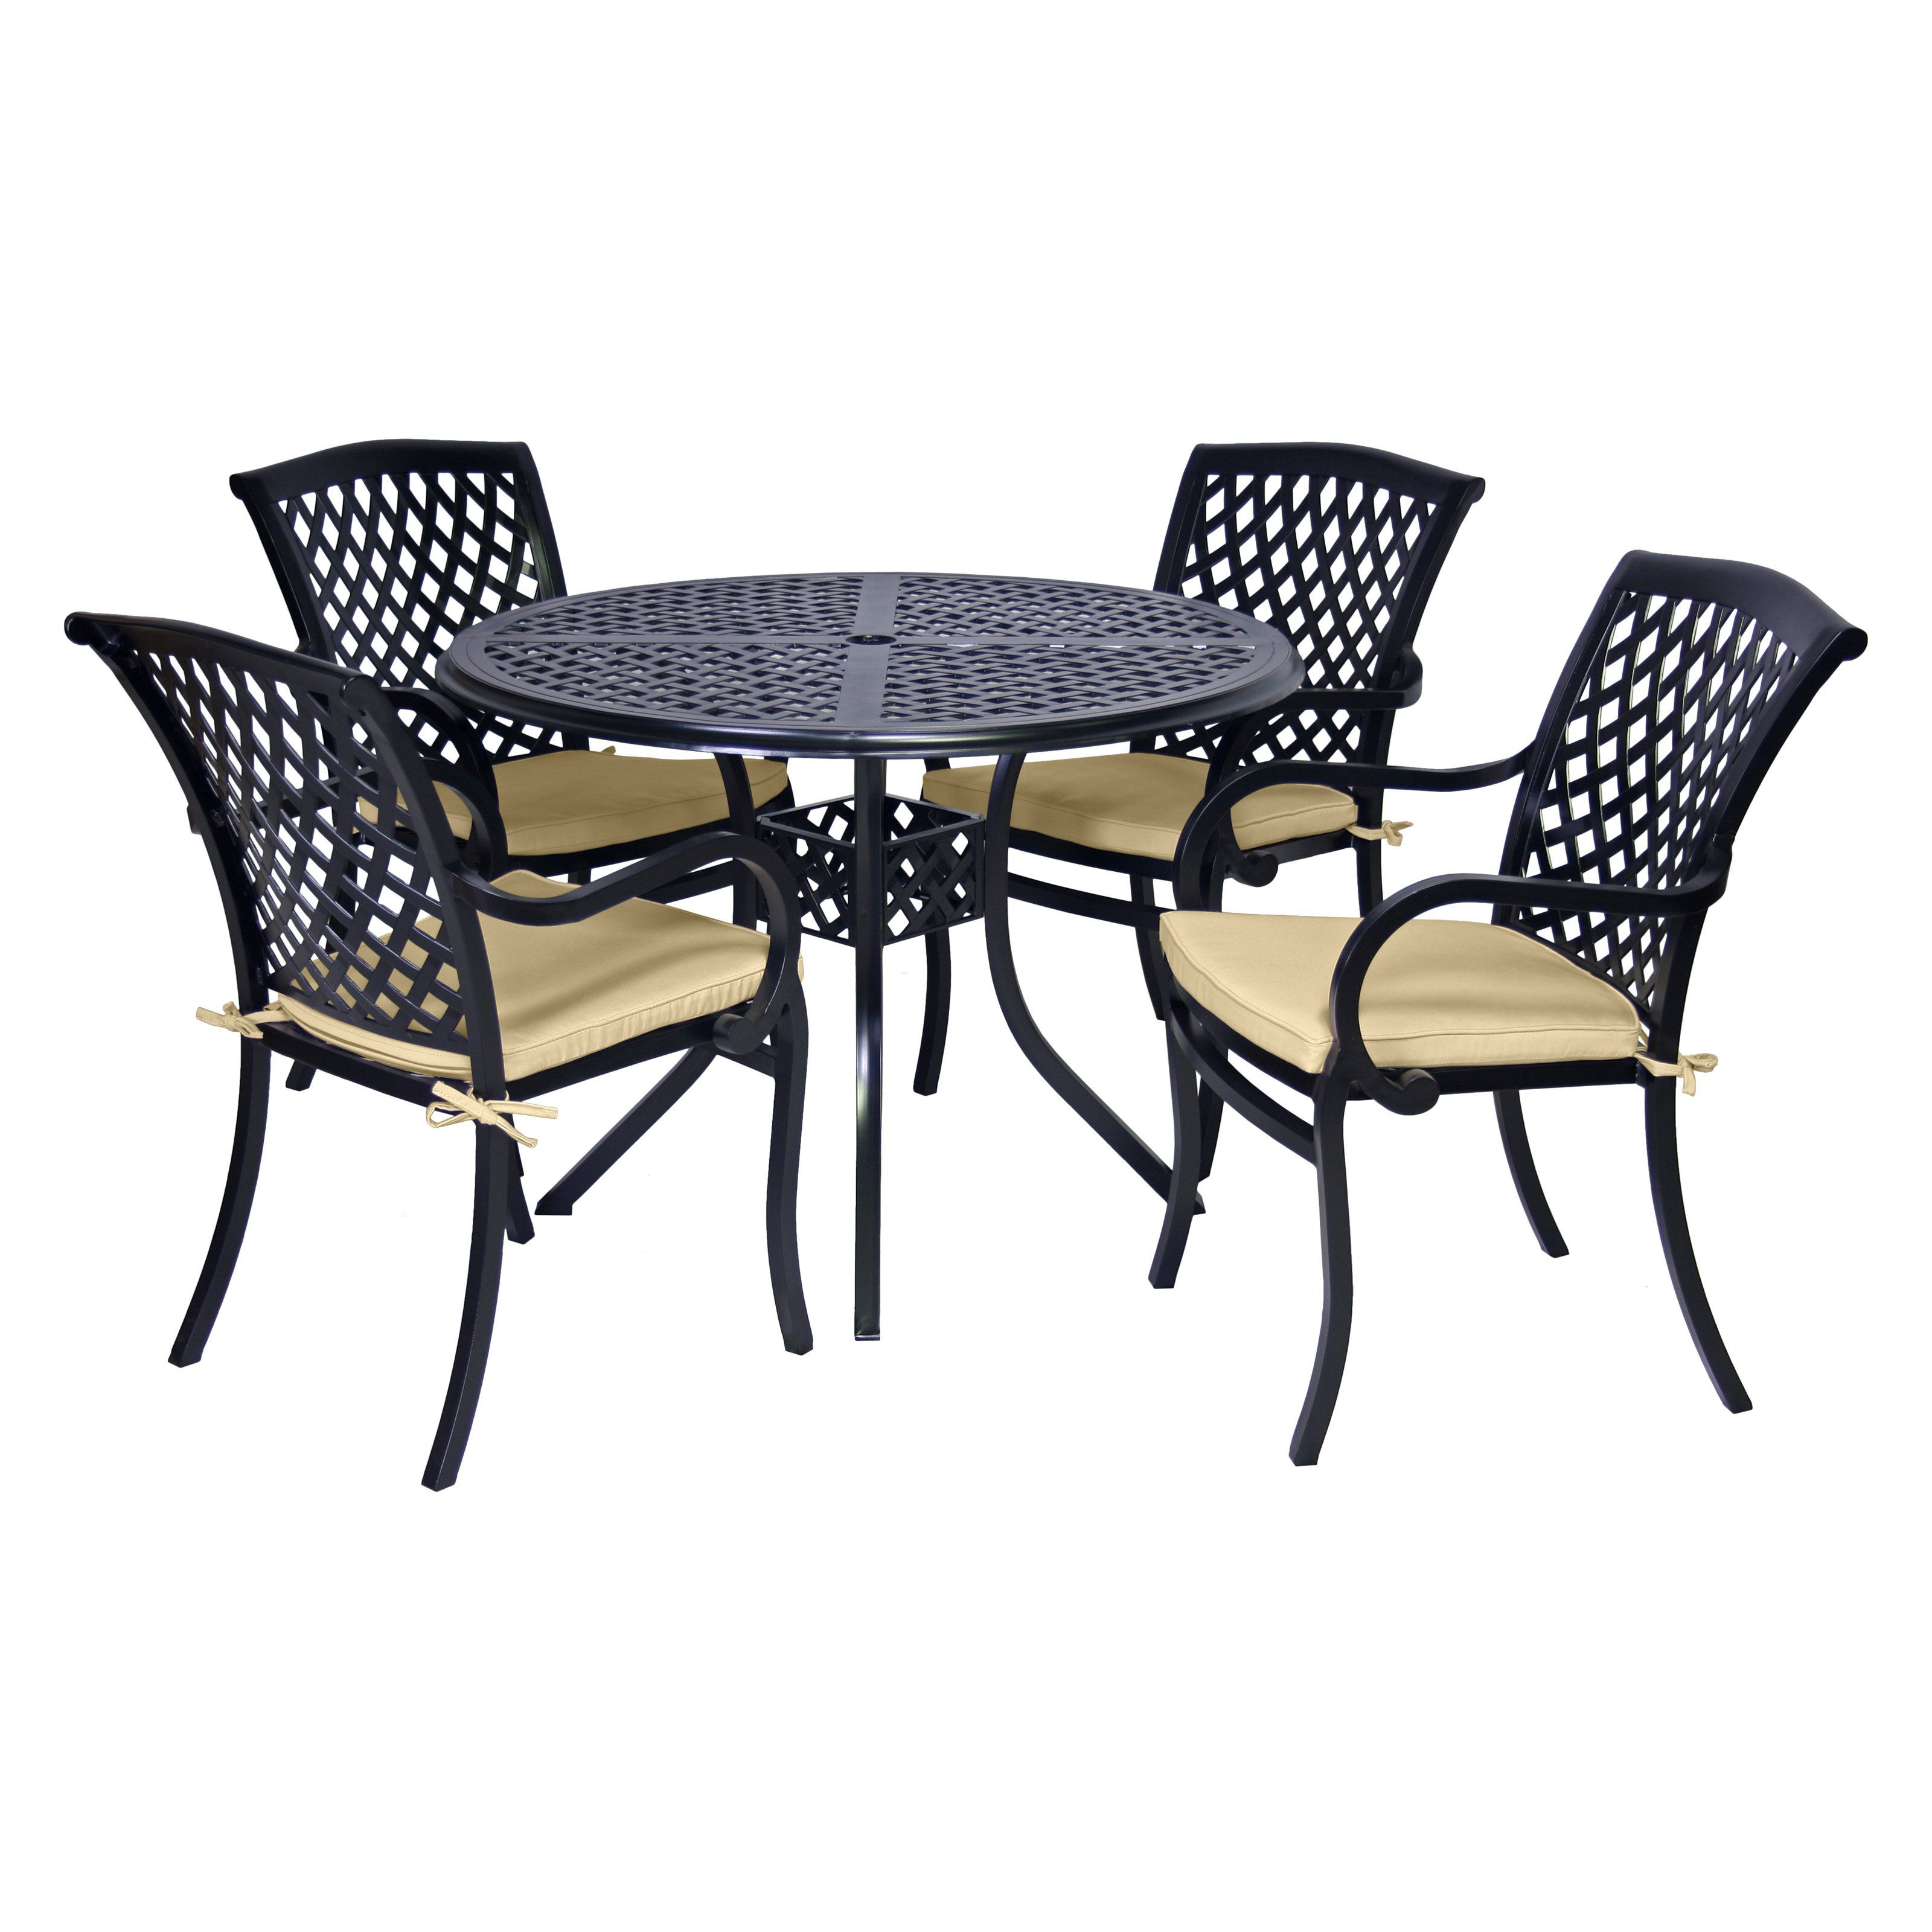 comfort with classic at piece patio set furniture bistro wellington miyu starts pin home dining